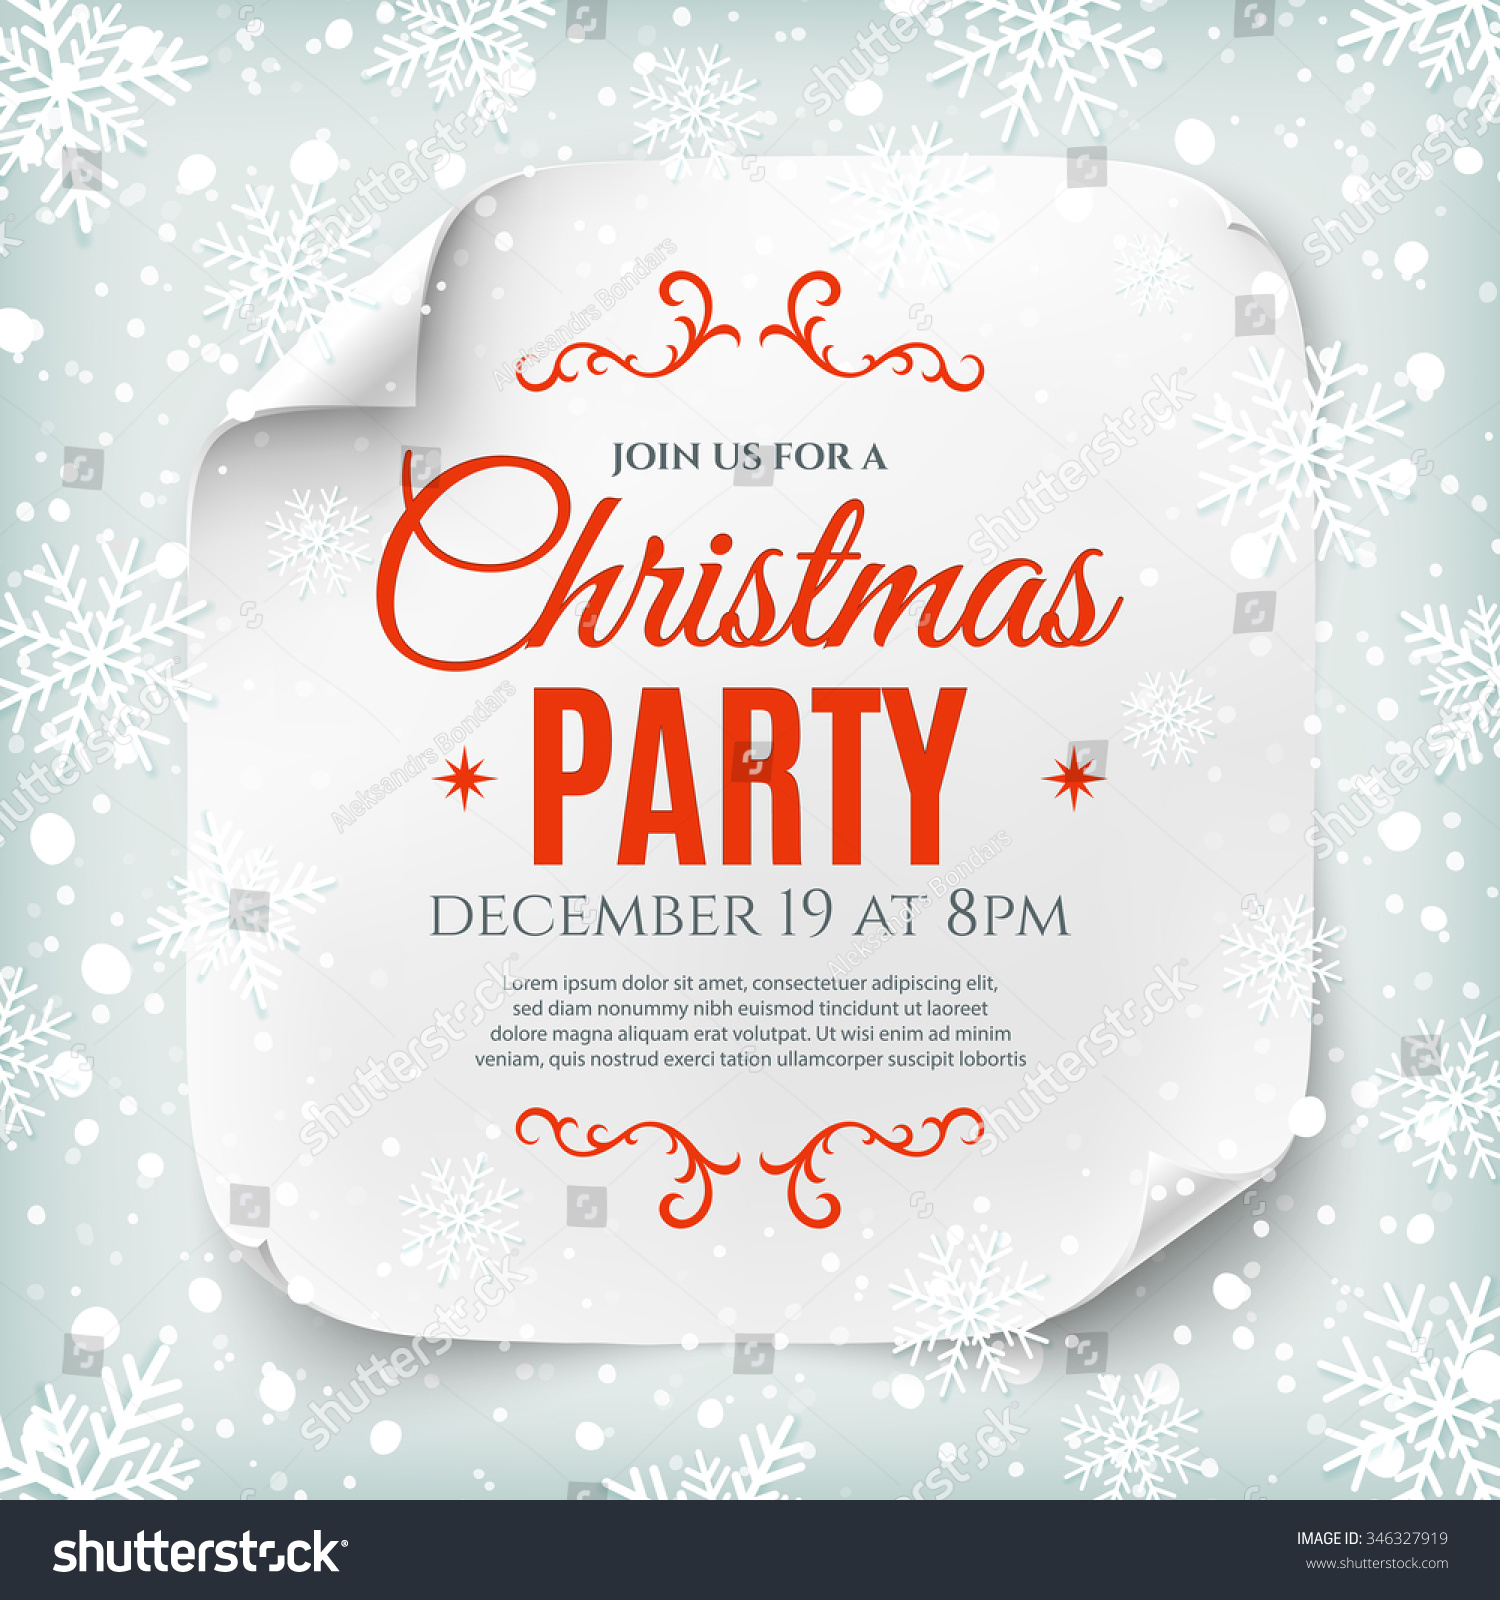 christmas party poster template snow and snowflakes save to a lightbox